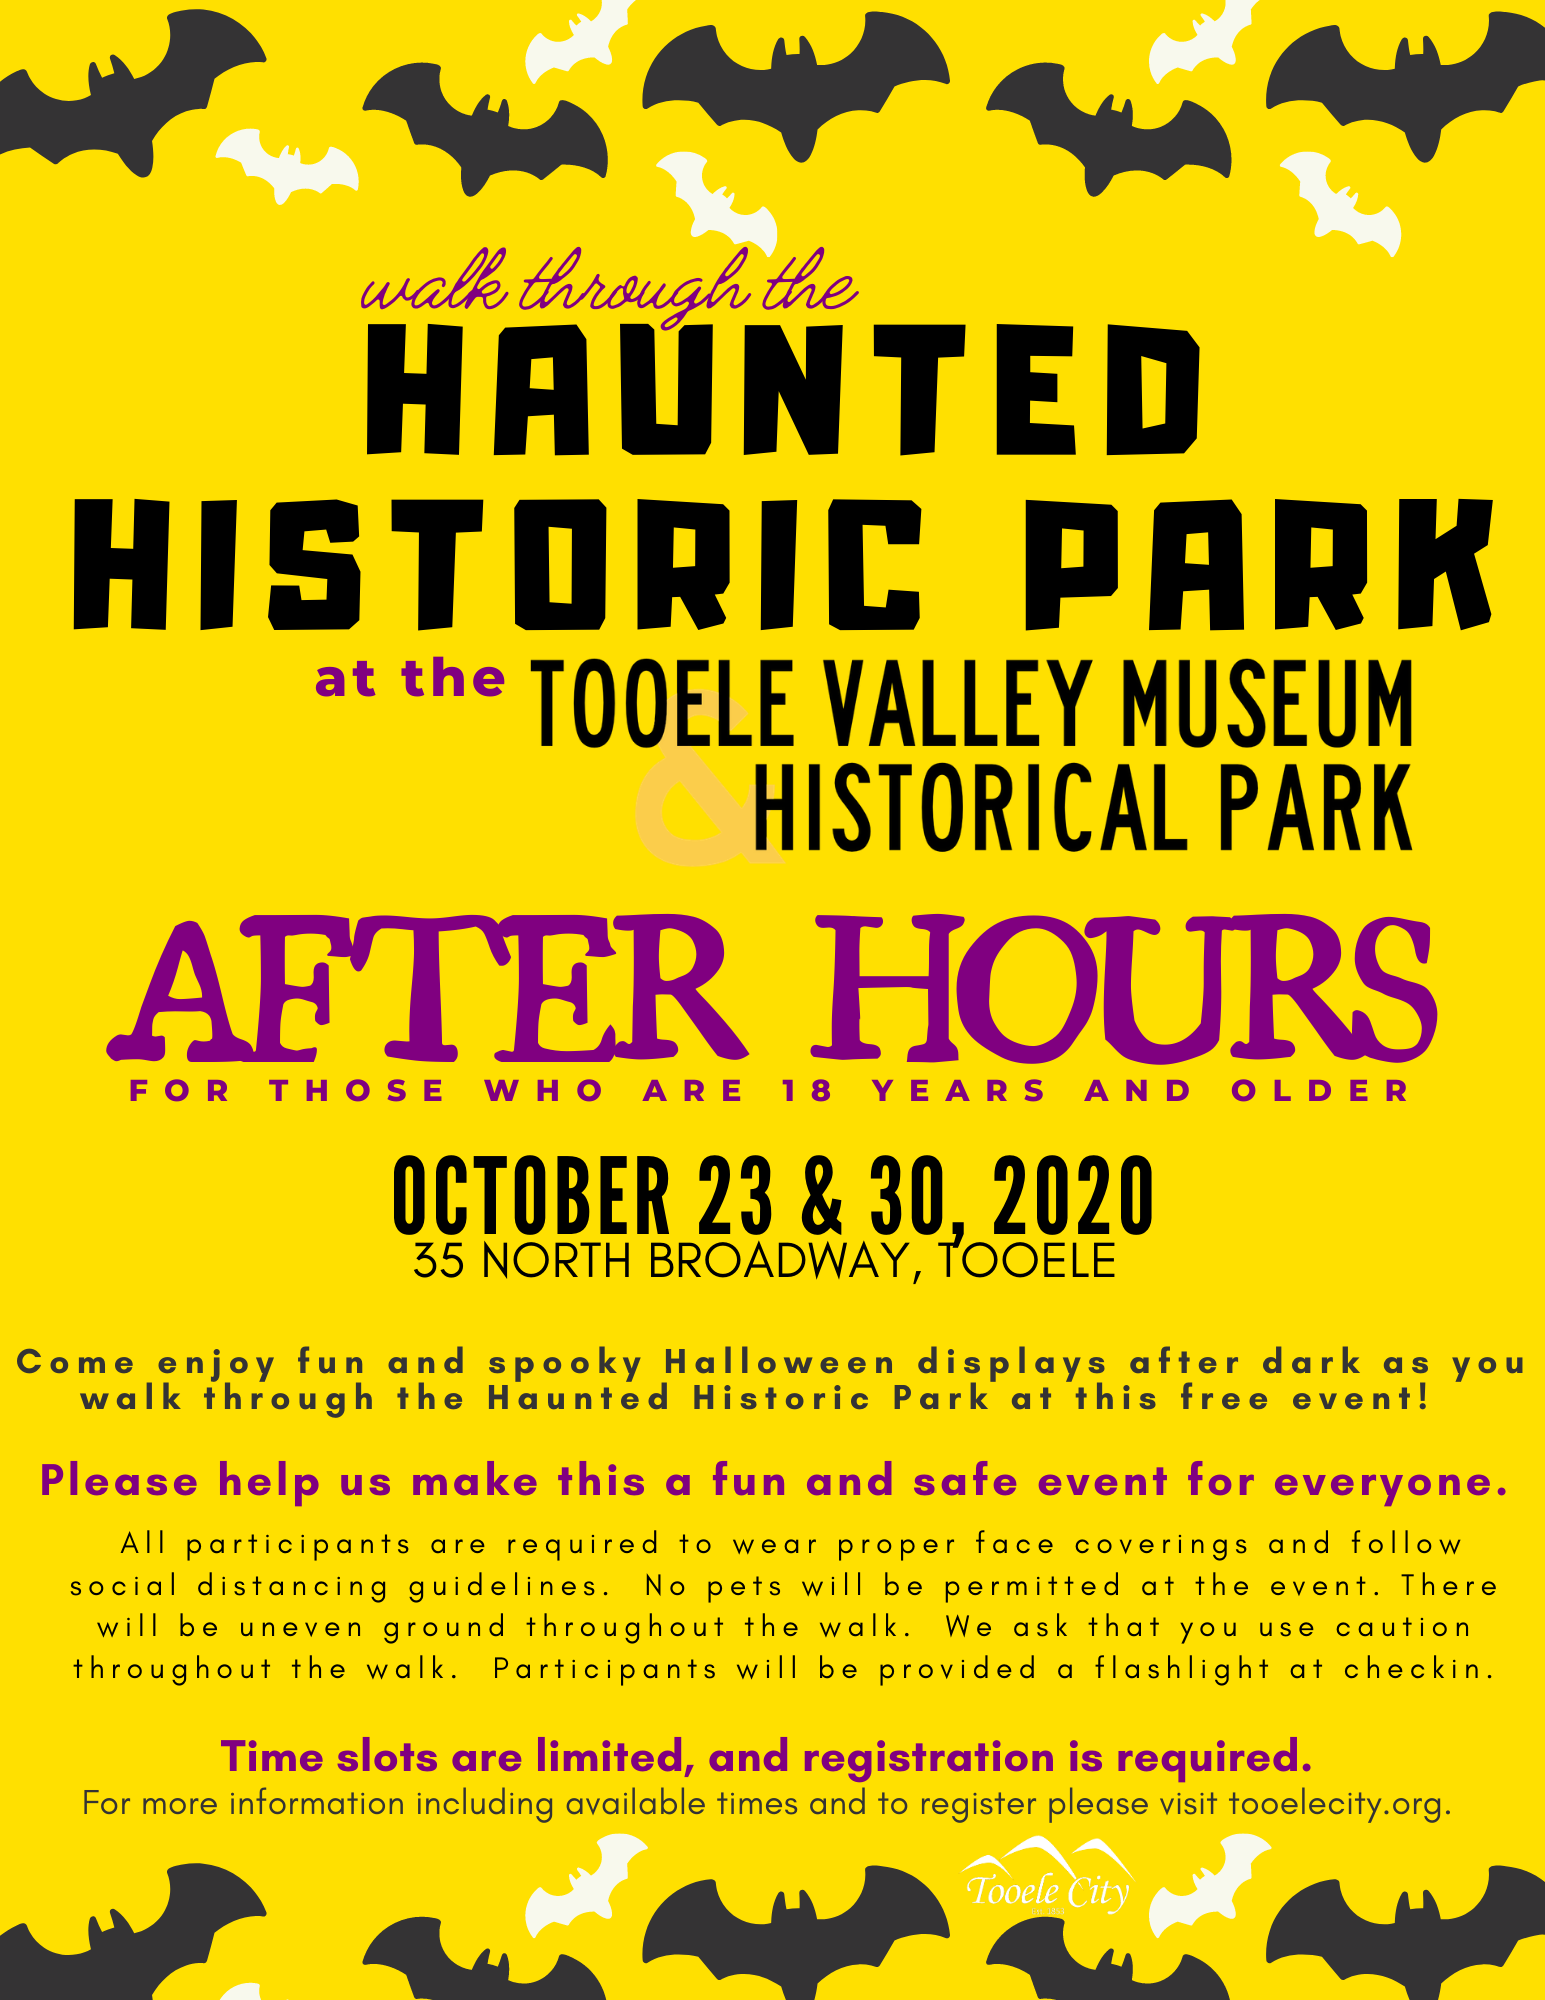 Haunted Historic Park 2020 - After Hours